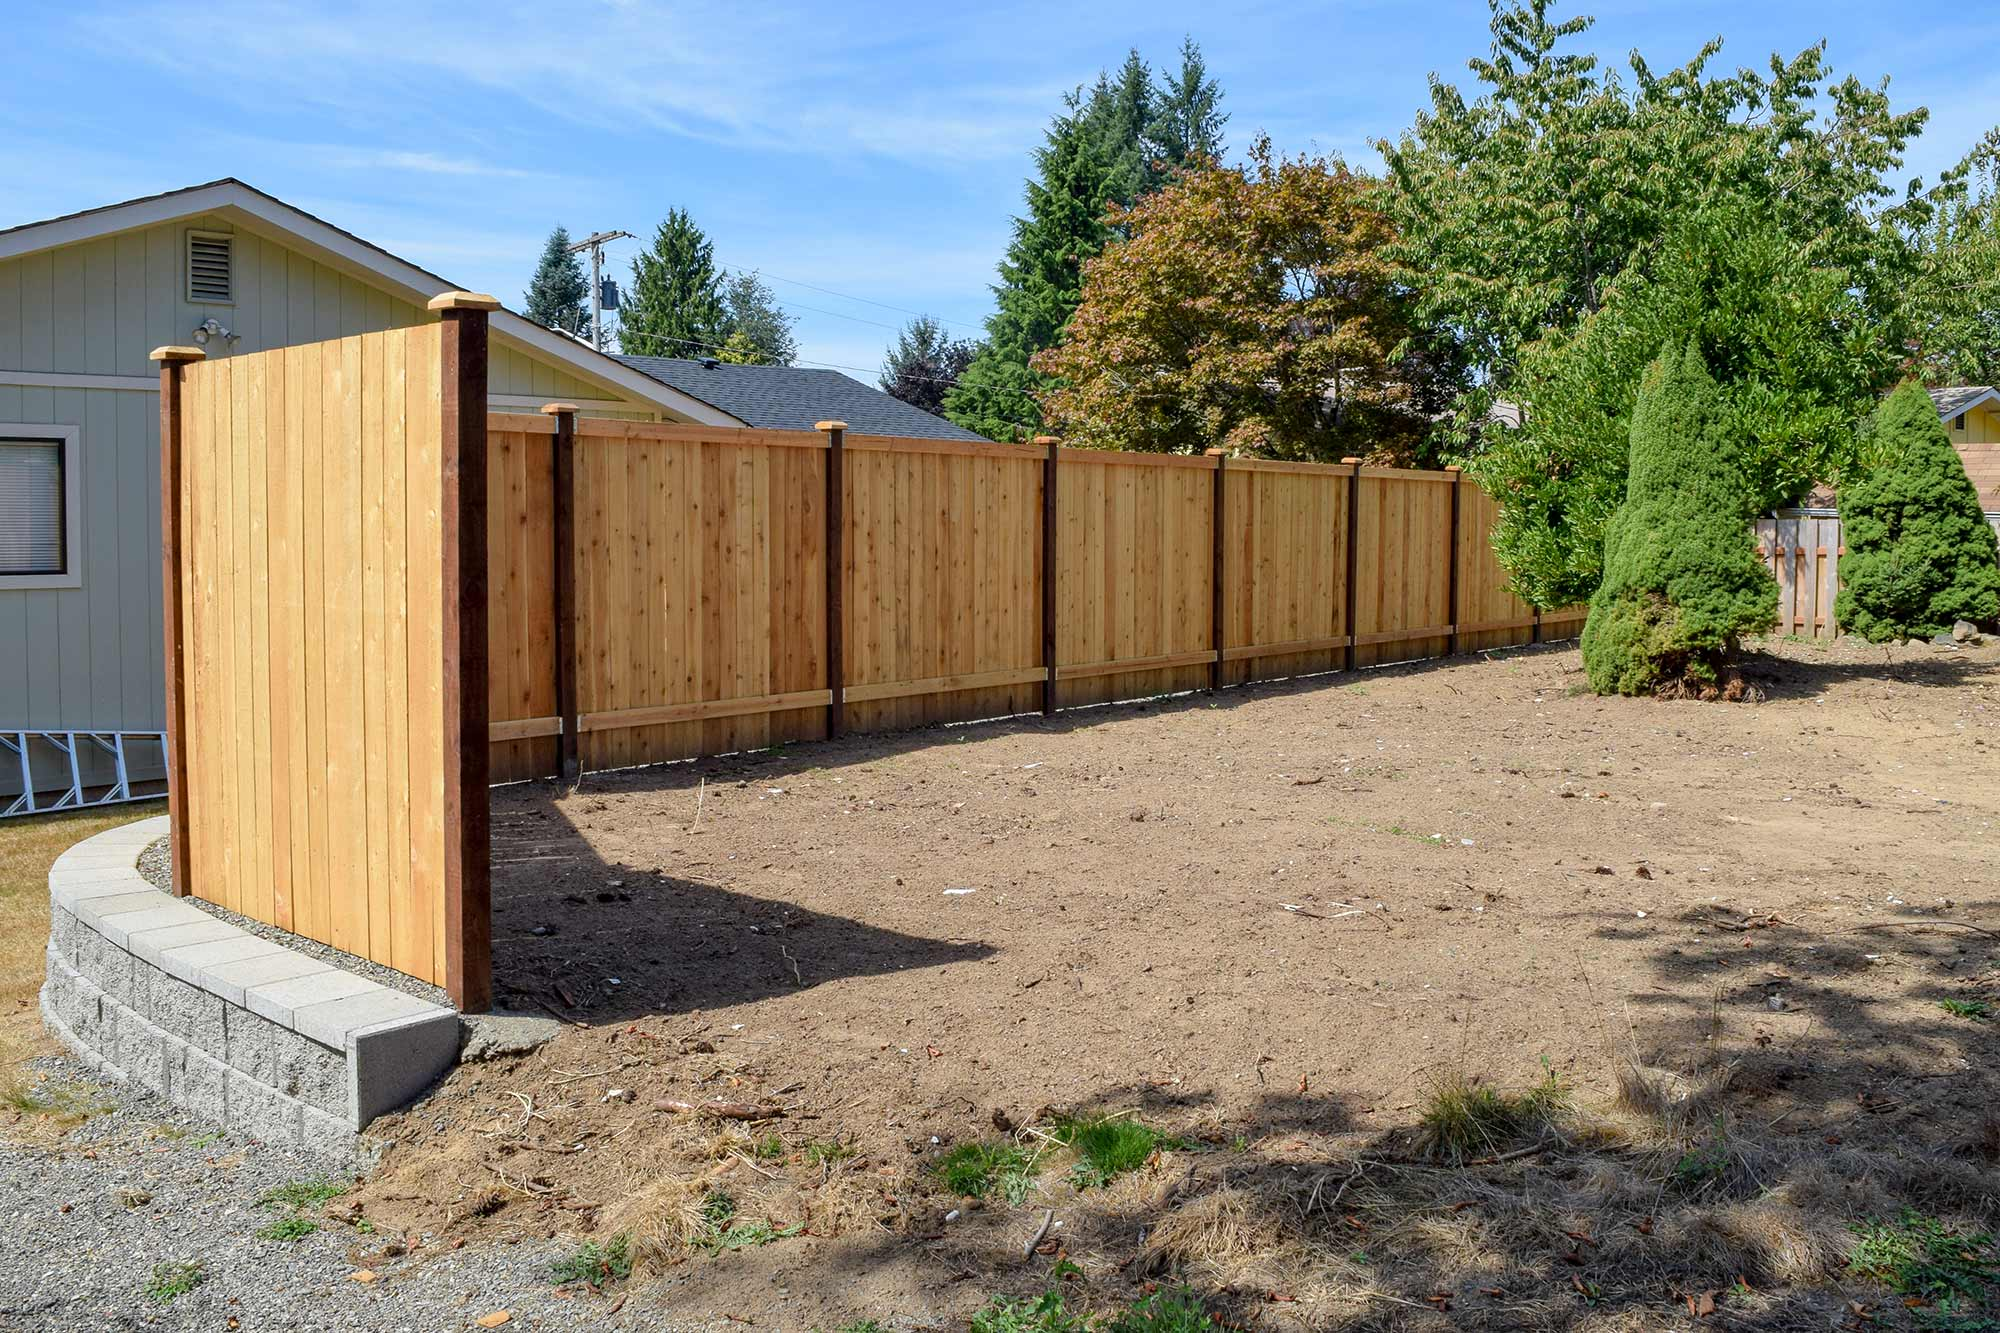 Panhandle property divider fence retaining wall in tumwater ajb rear view fence retaining wall rear view fence retaining wall baanklon Gallery